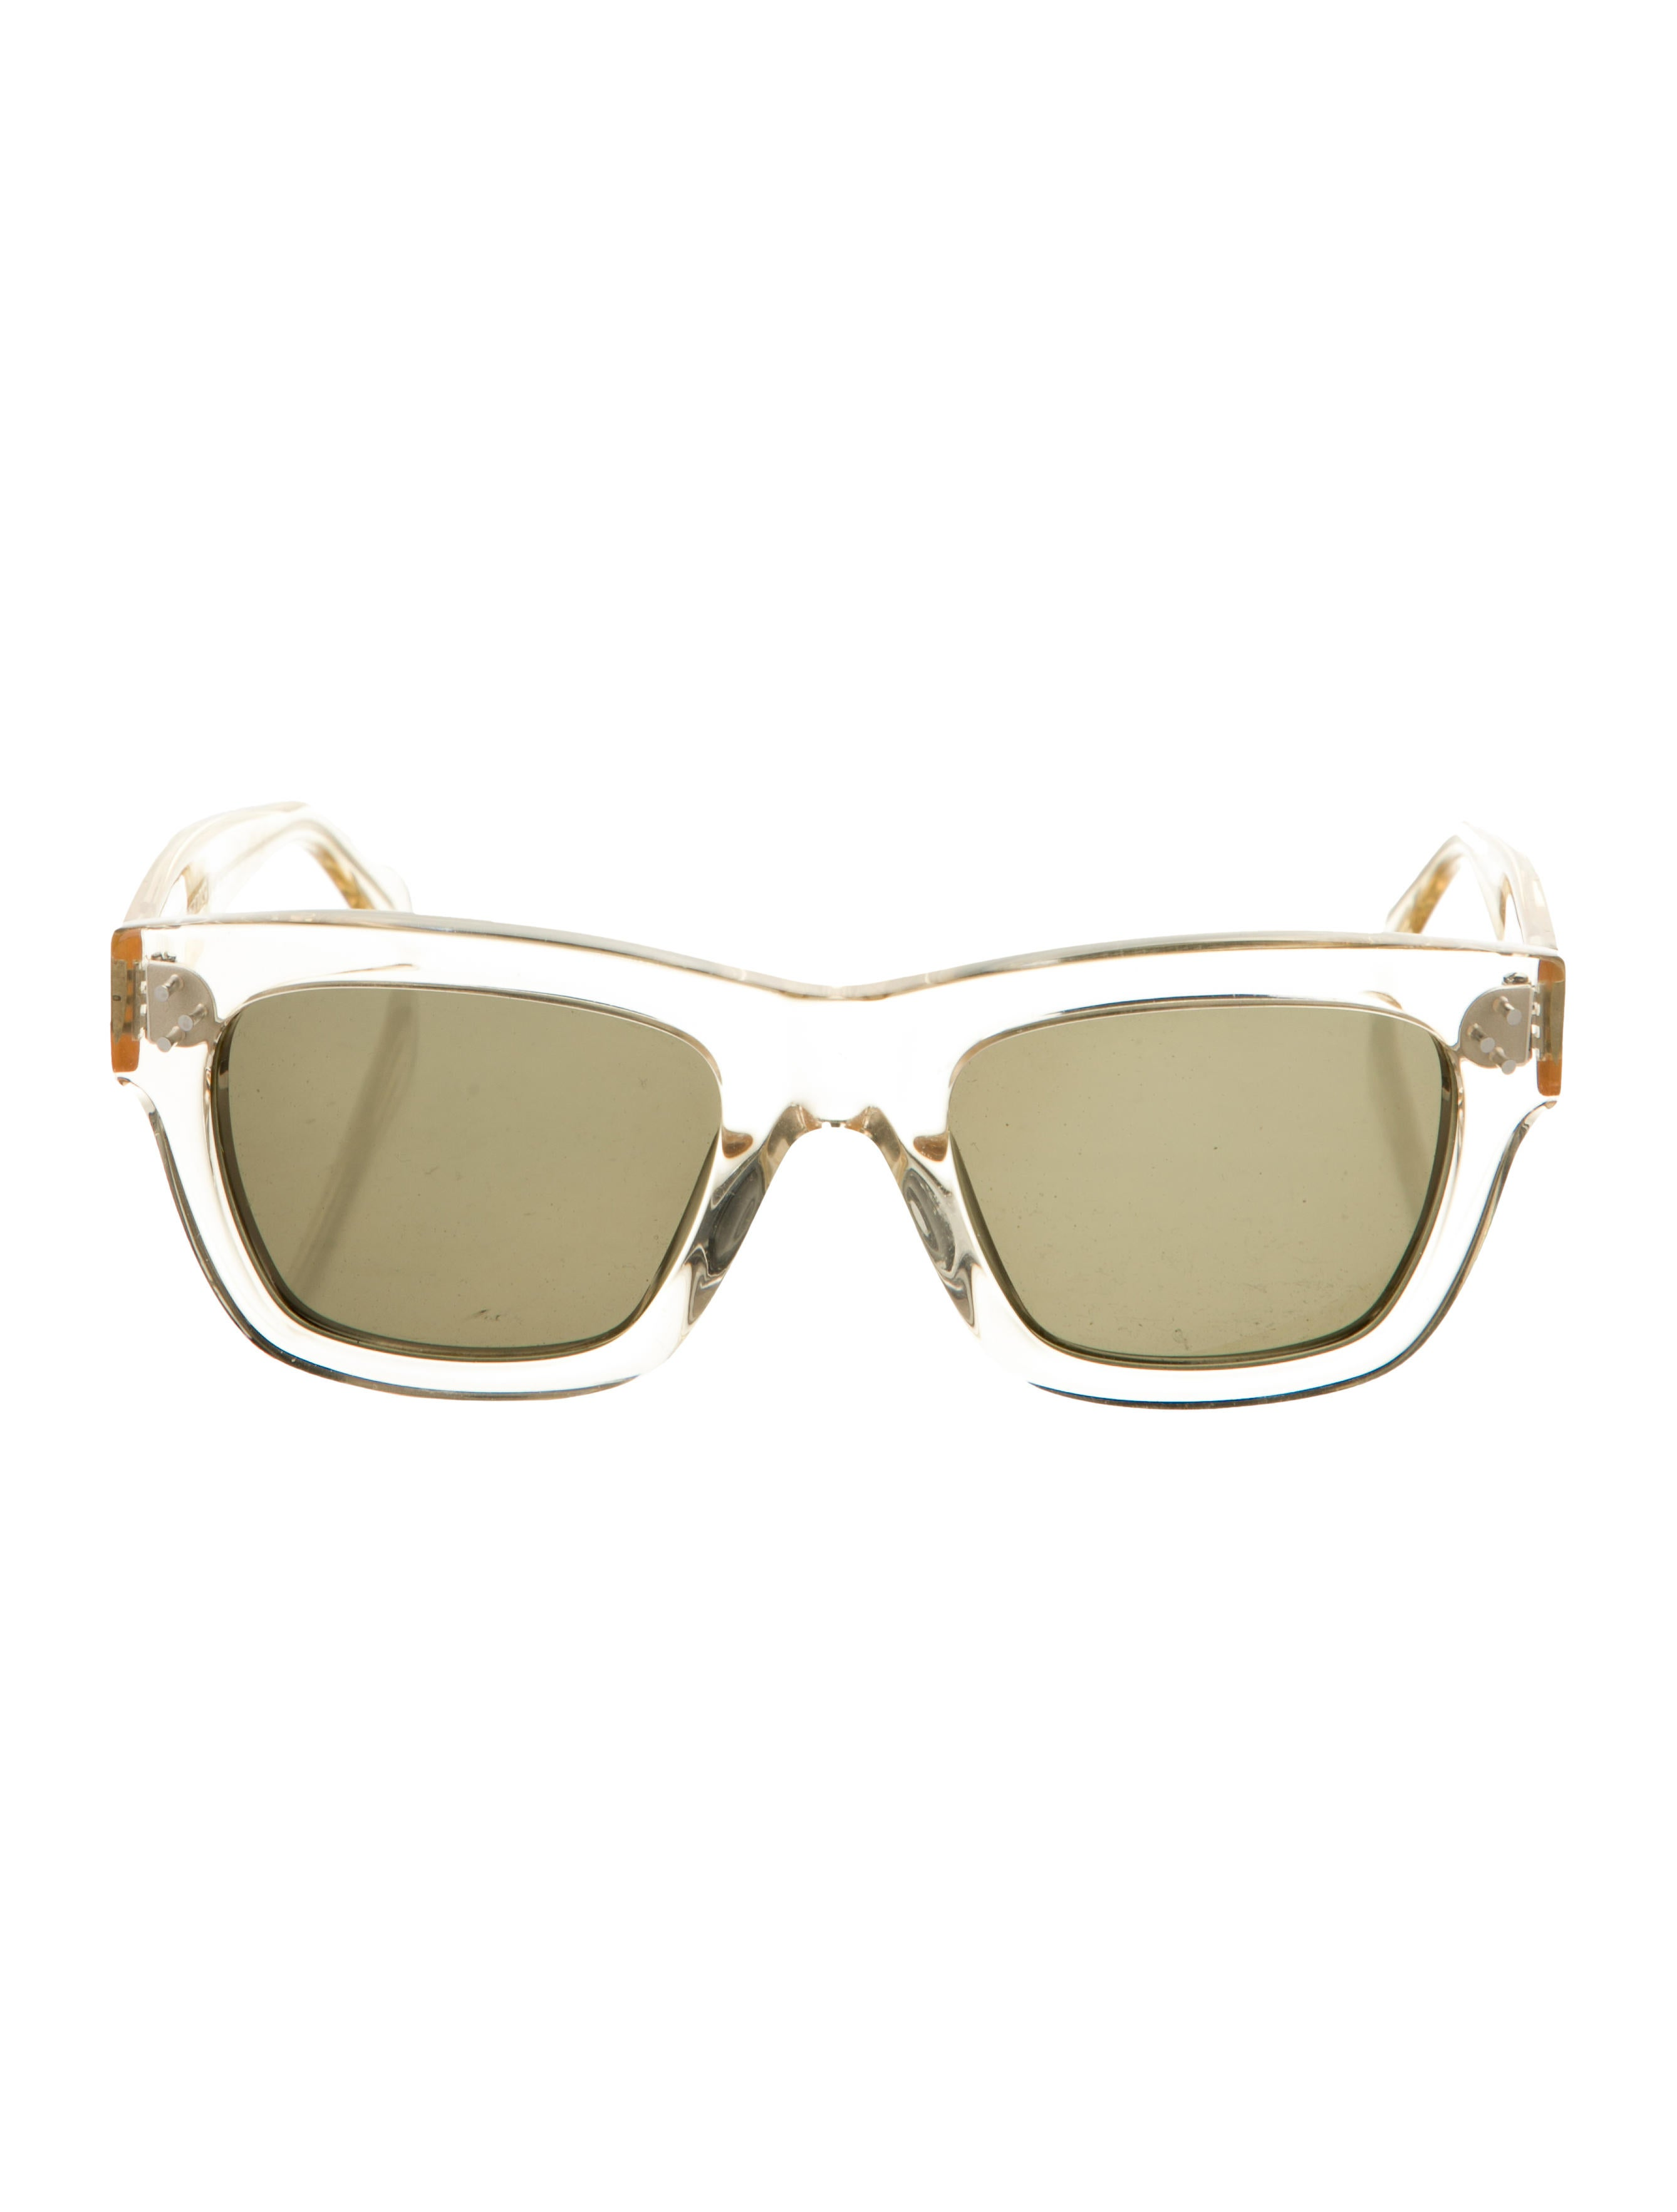 Celine Square Tinted Sunglasses - Accessories -           CEL112055 | The RealReal